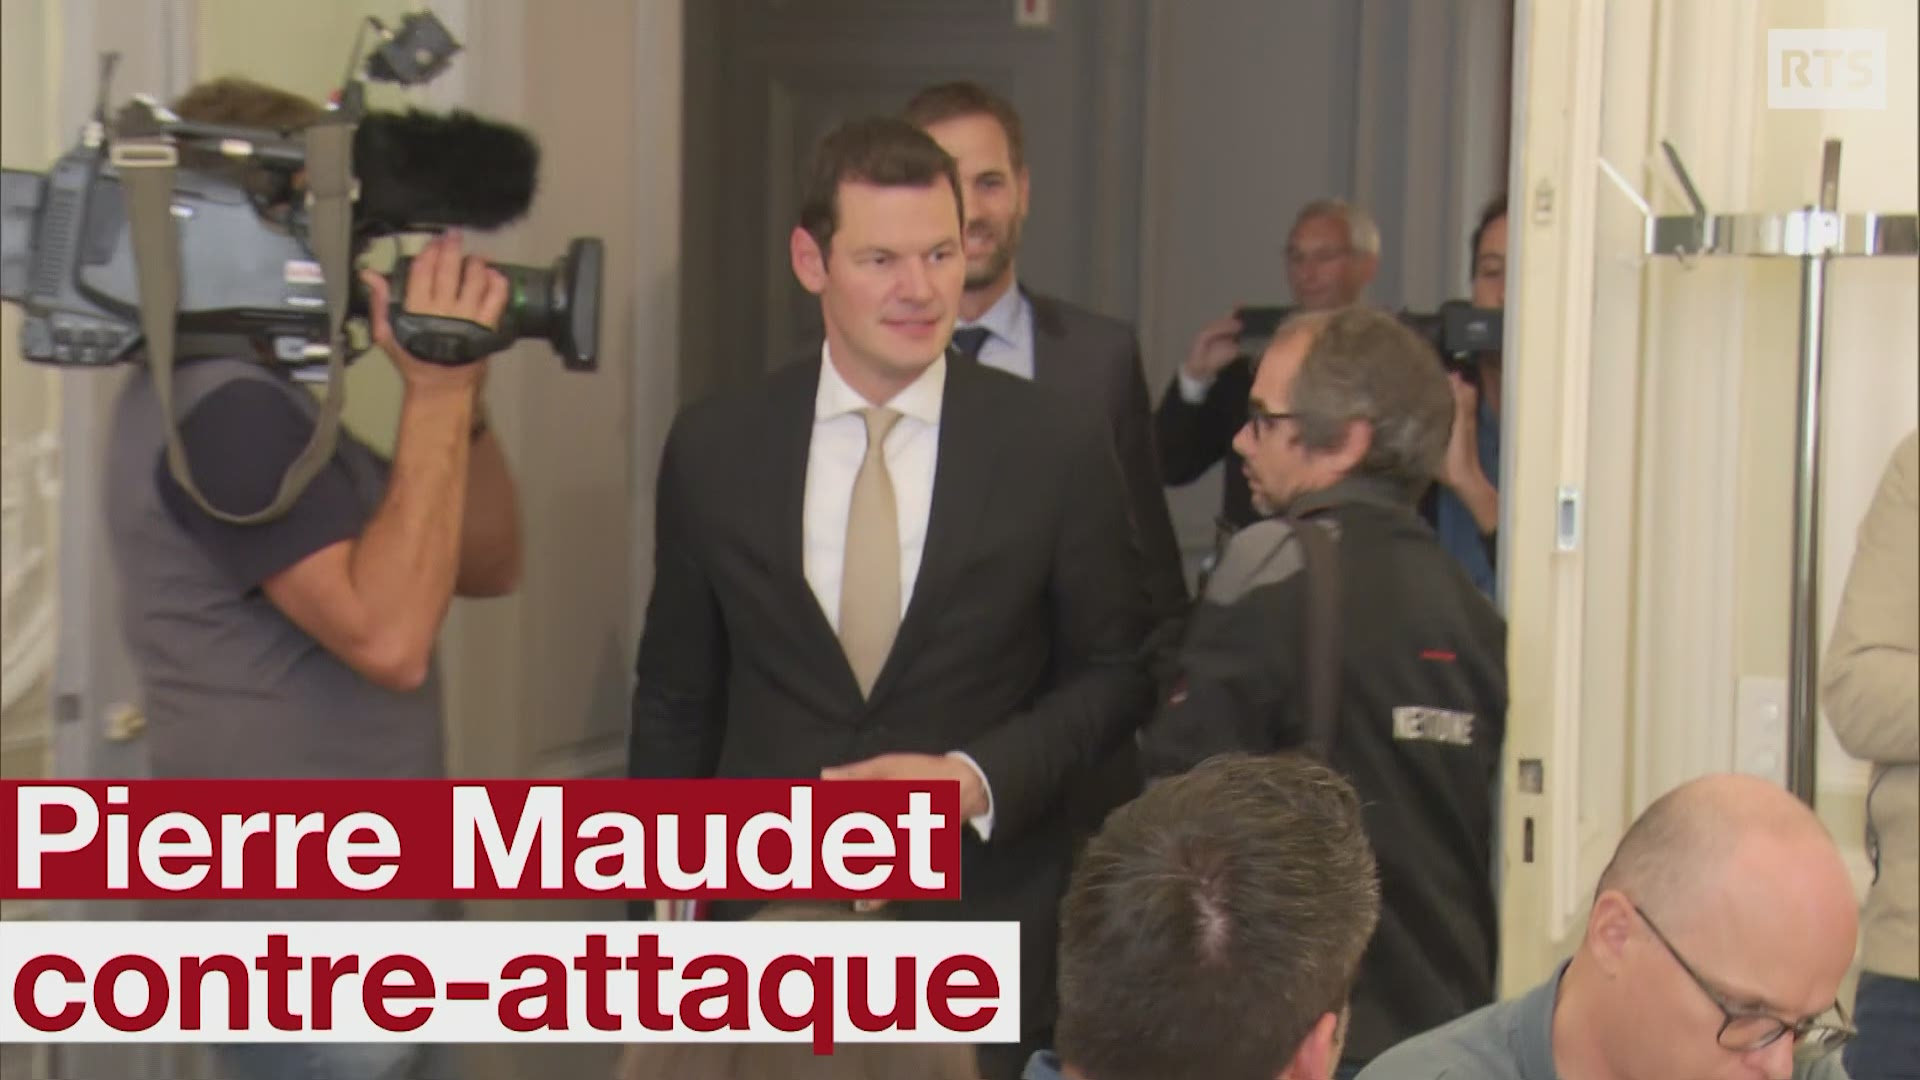 Pierre Maudet attaque les procureurs en charge de son affaire